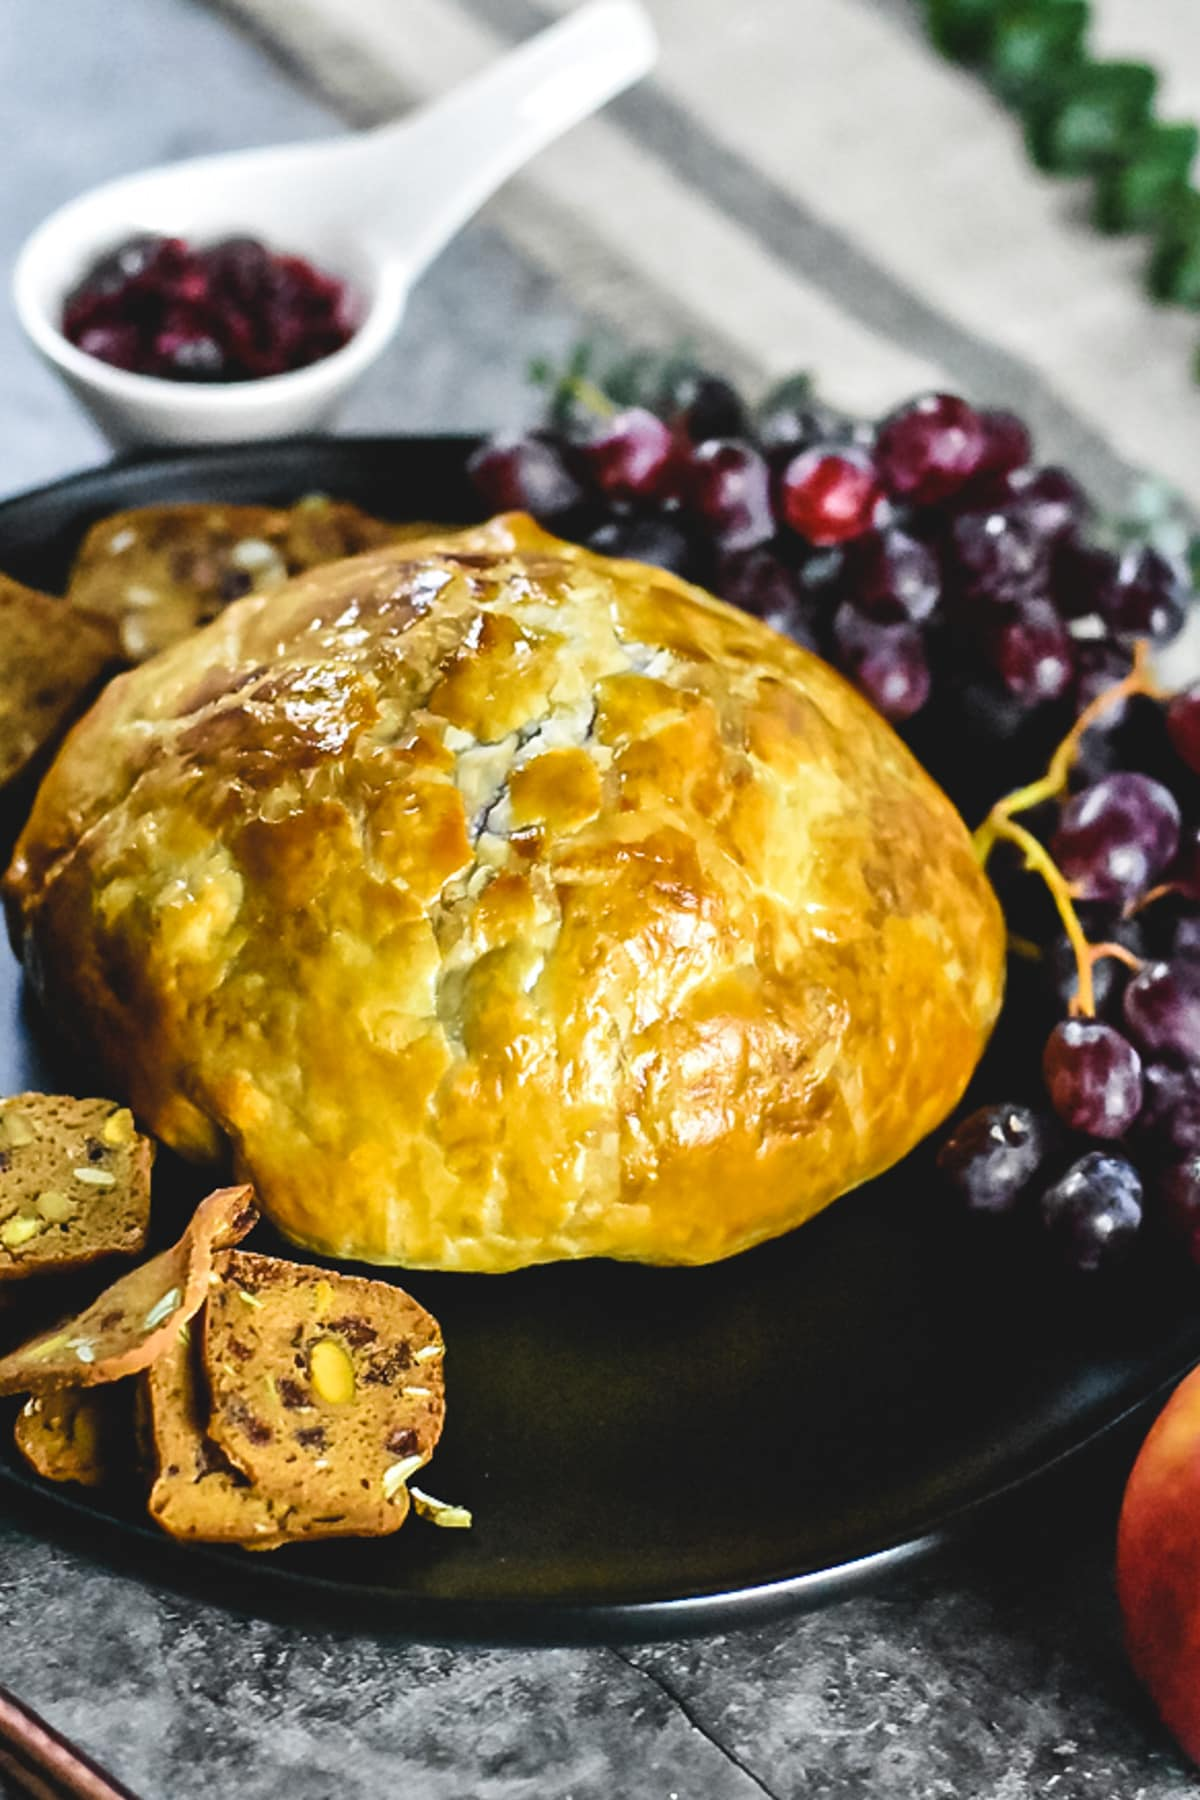 Baked brie in puff pastry served on a black plate with grapes and crackers, jam in the background